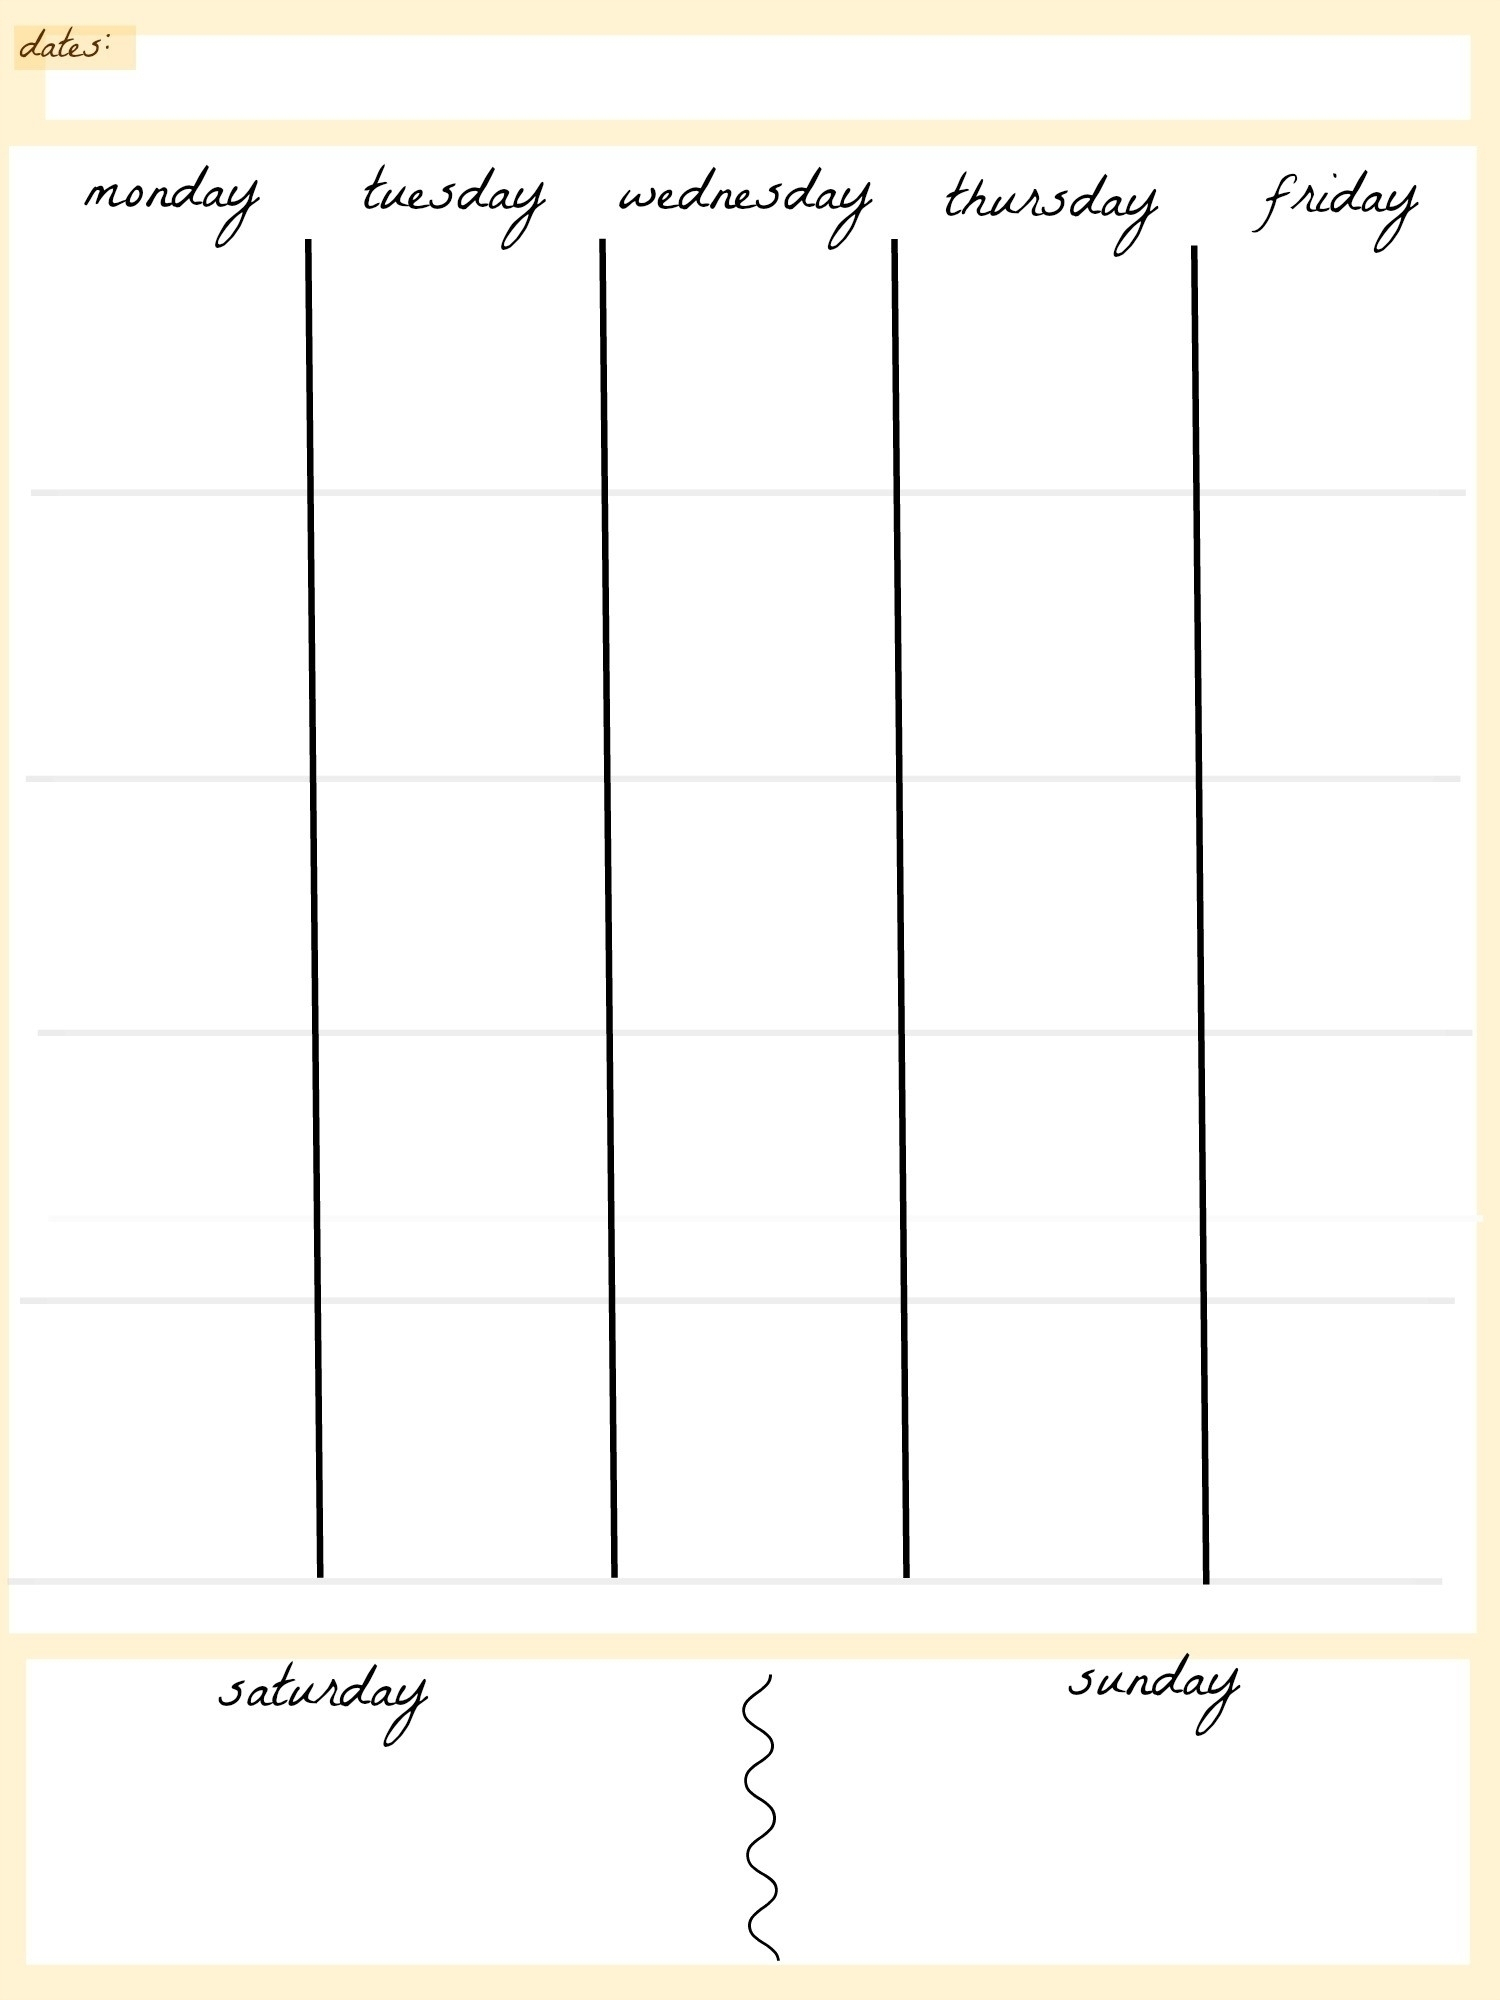 Good Free Printable 5 Day Calendar Template : Mini Calendar within 5 Day Weekly Calendar